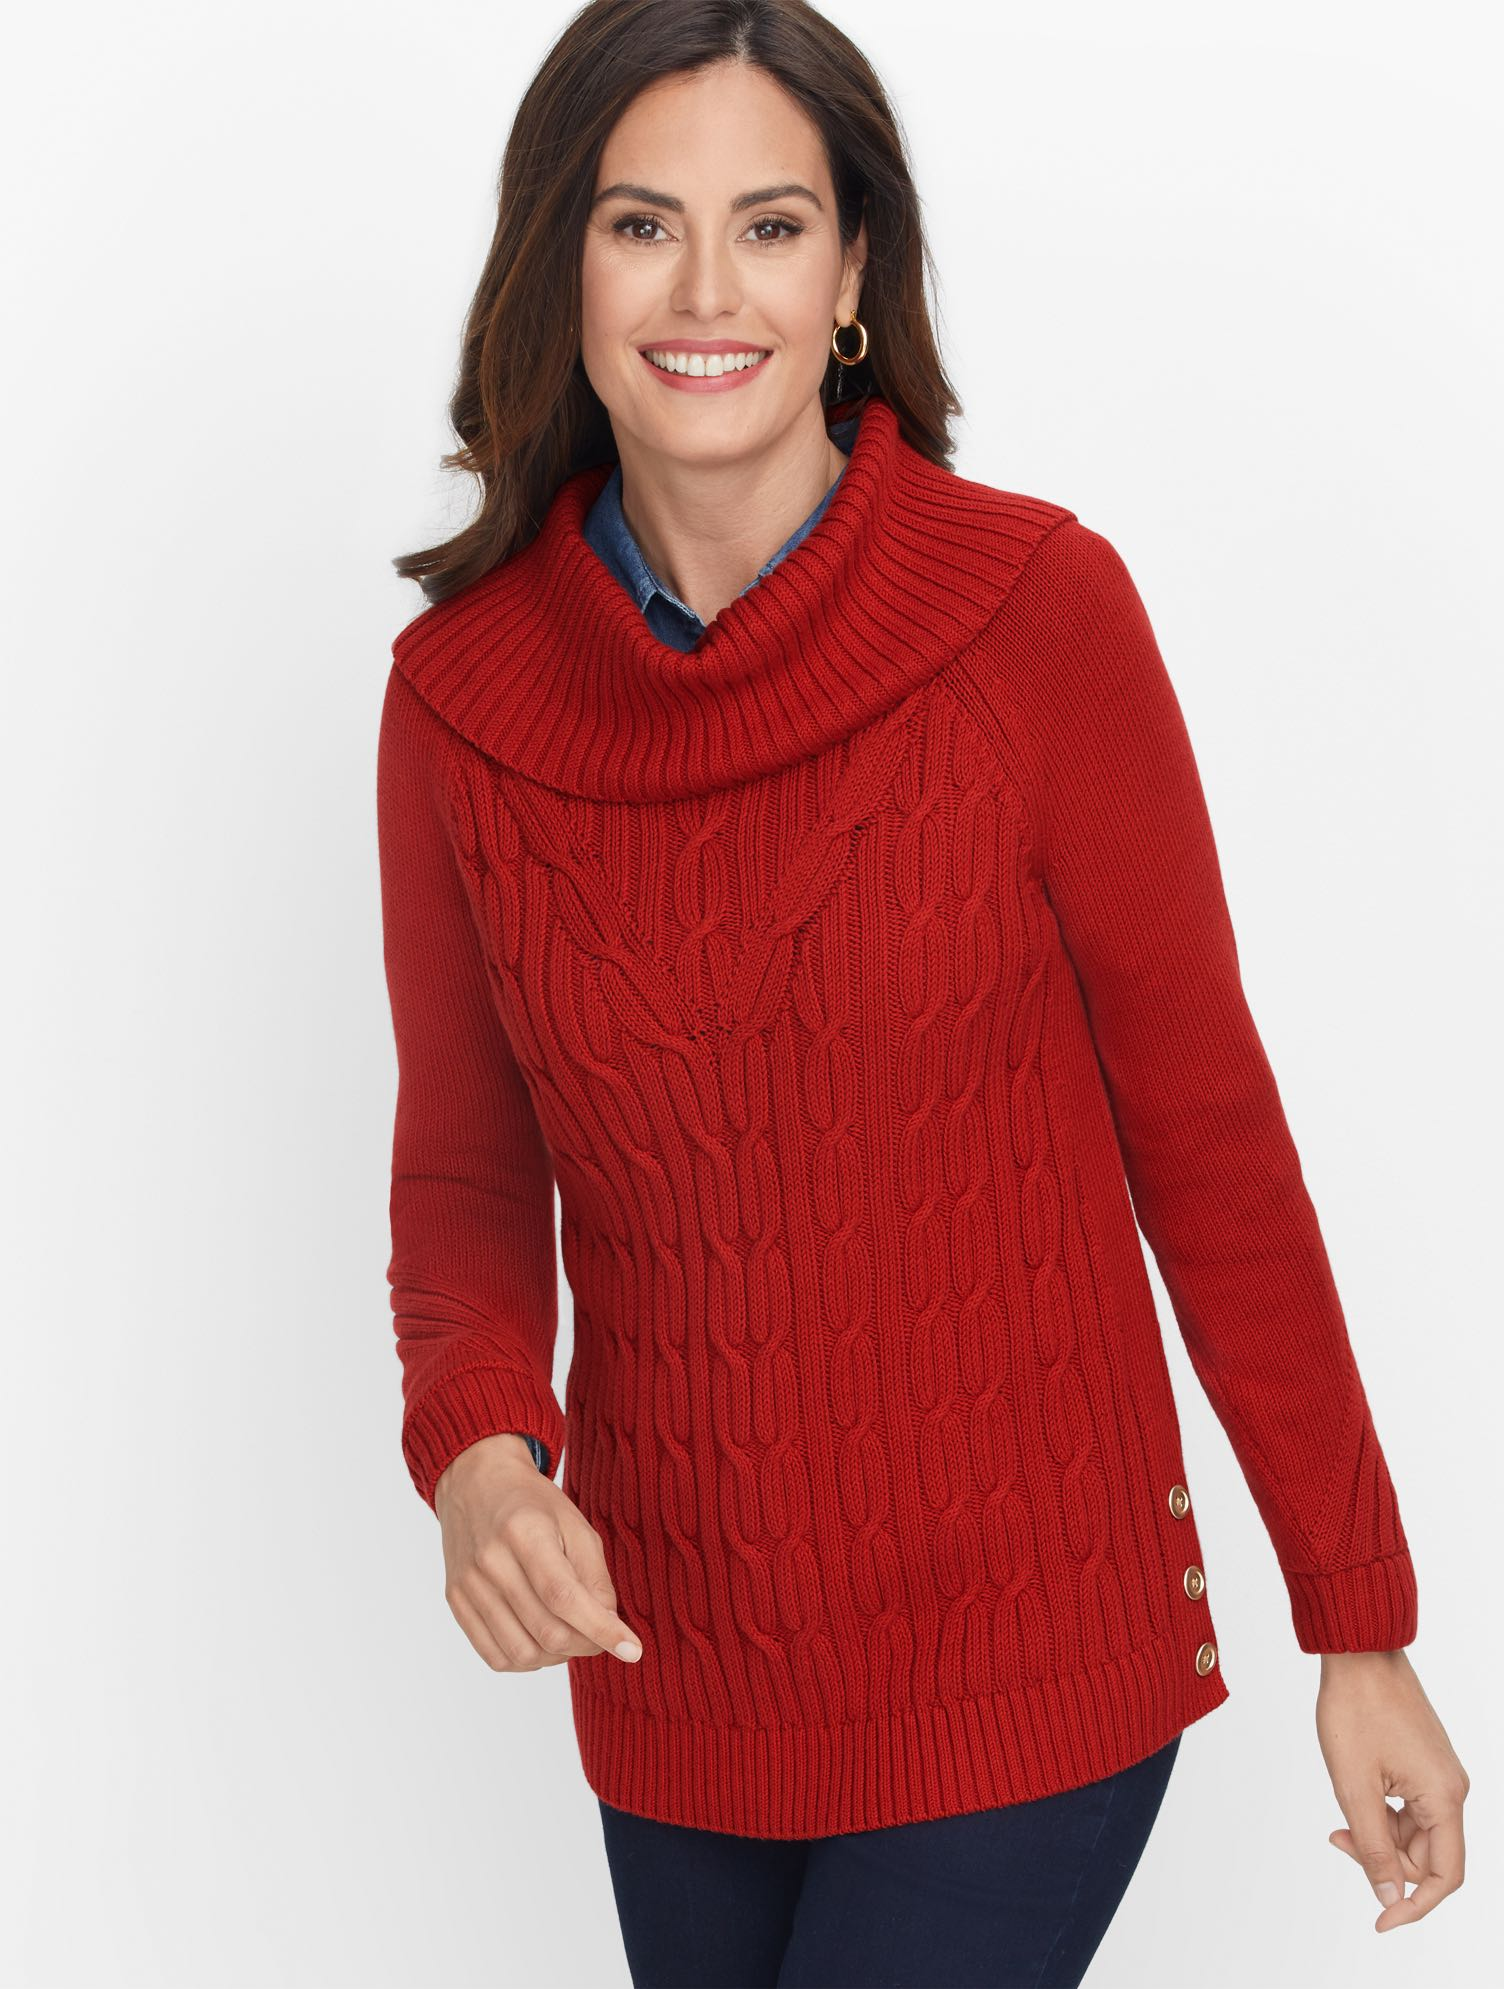 Sumptuous cowl neck turns up the coziness of our cable sweater. Button detail at side. Perfect for long walks or lounging at home. Features Neckline: CowlSleeve length: LongHits: At hipClosure: PulloverImported Fit: Misses: 25 1/2 inches; Petite: 24 1/2 inches Material: 100% Cotton Care: Machine Wash; Reshape, lay flat to dry Cotton Cowlneck Sweater - Solid - Rich Russet - XL Talbots